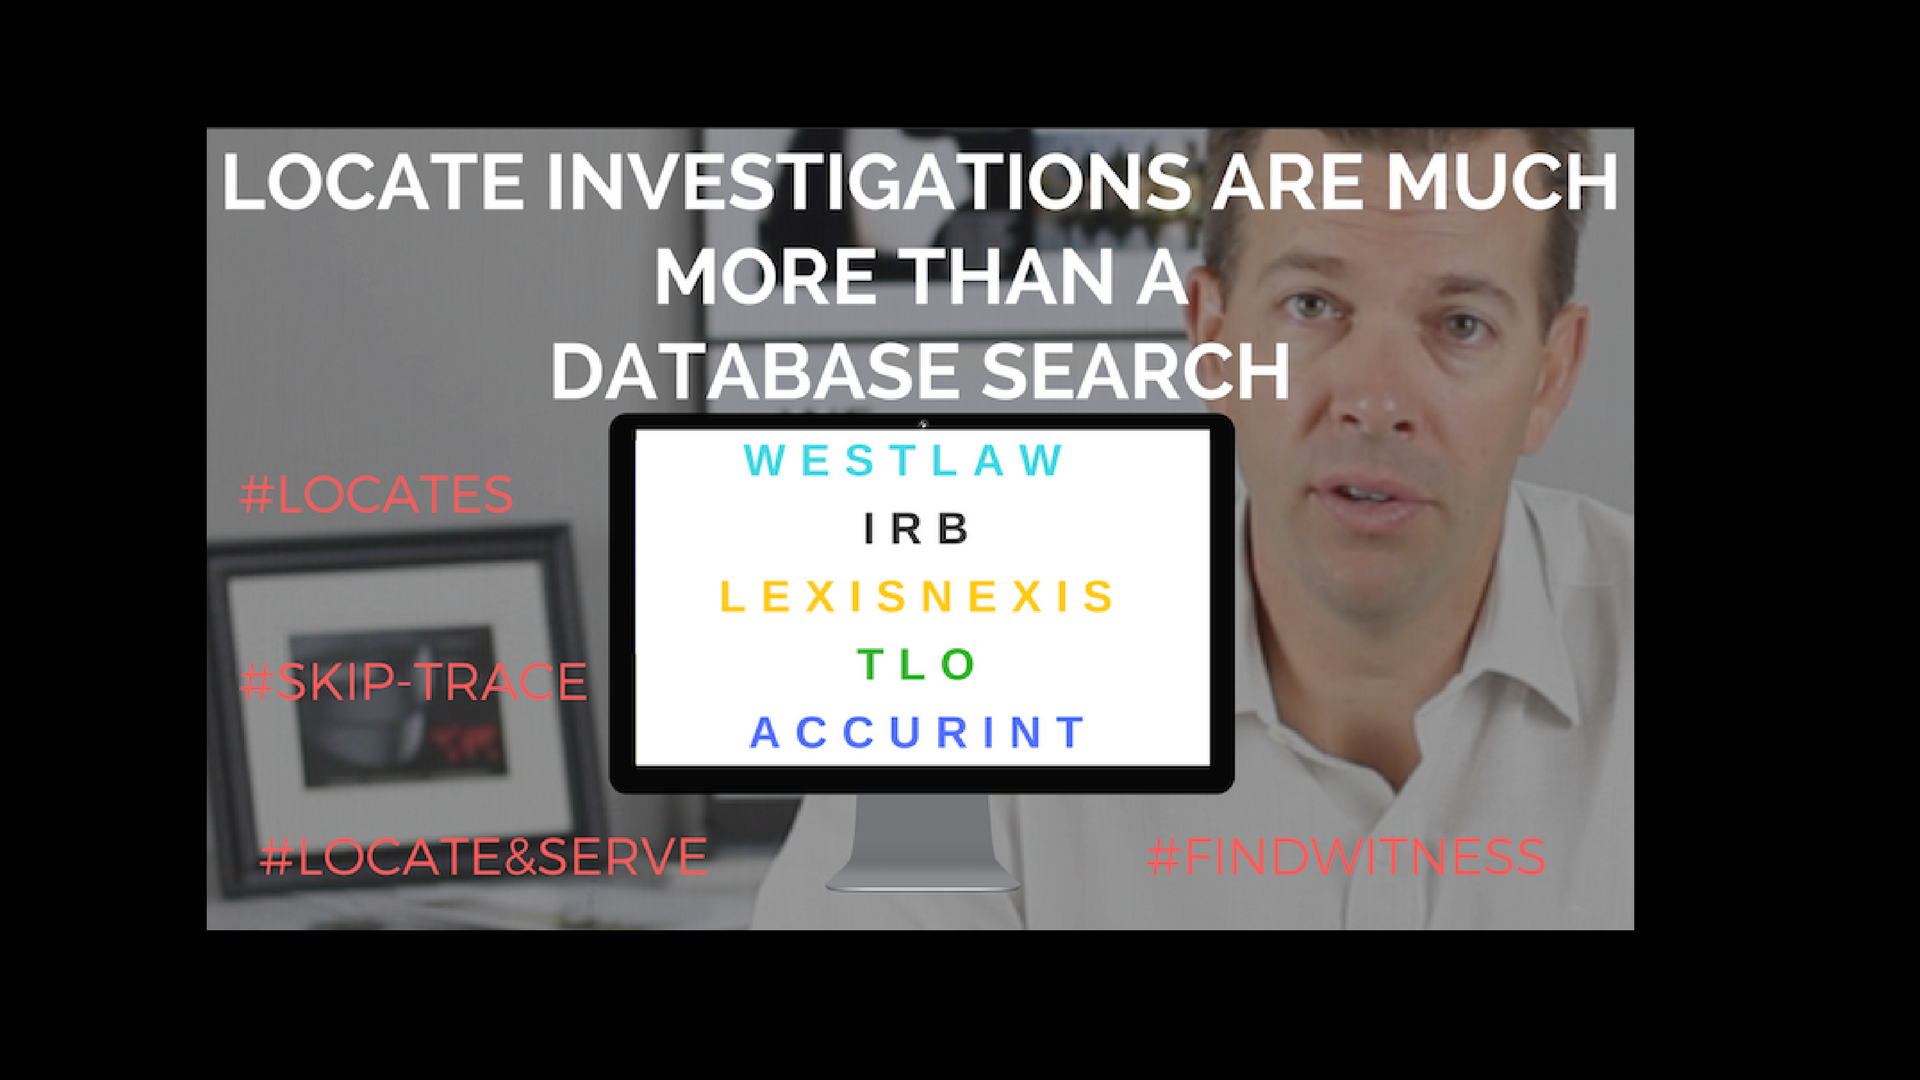 Locate Investigations are Much more Than A Database Search